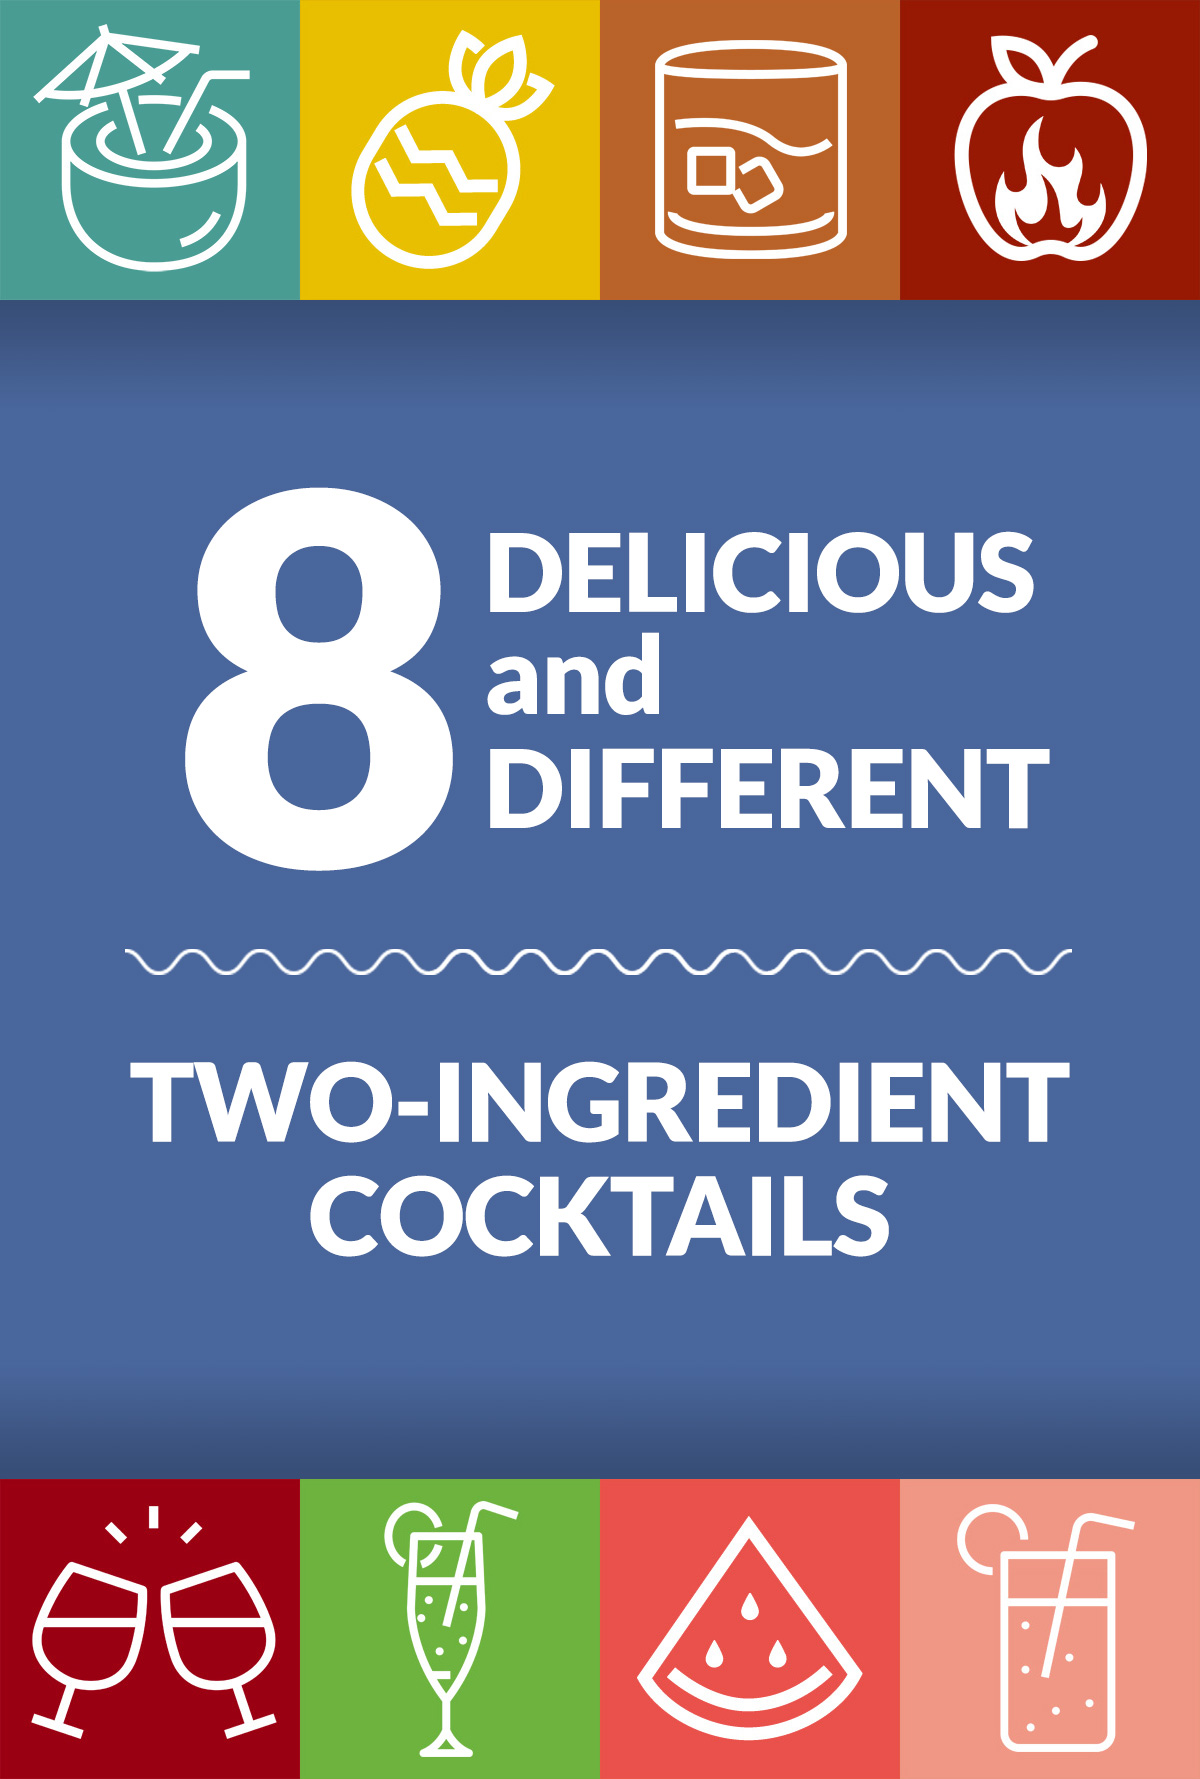 Delicious & Different Two-Ingredient Cocktails - 8 Simple Recipes - Fun Alcoholic Drinks